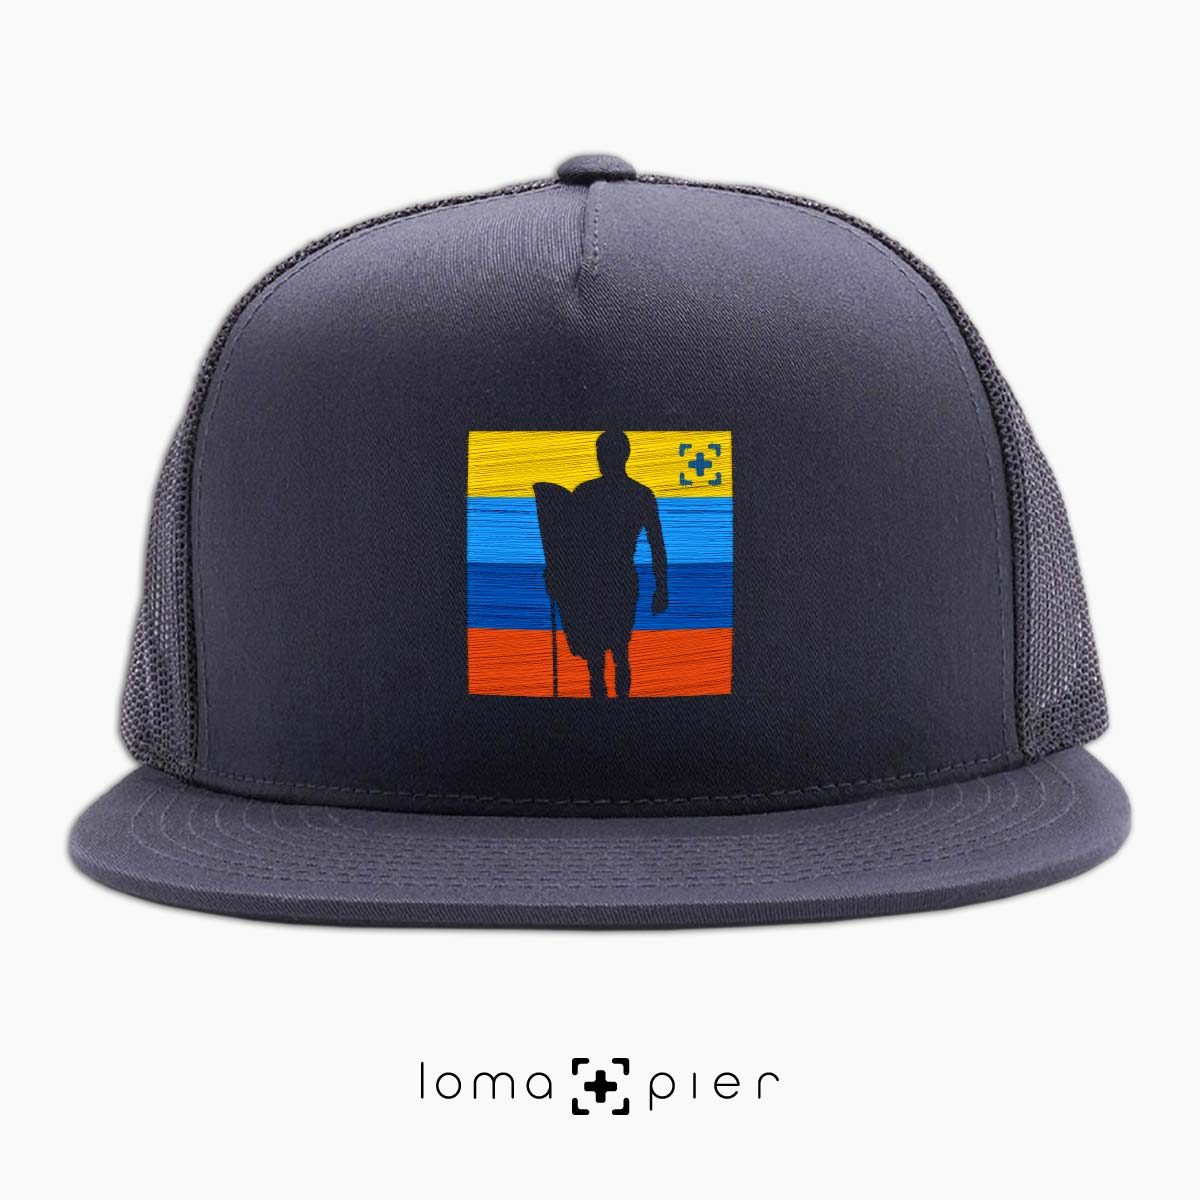 SON OF A BEACH surfer icon netback hat in charcoal by loma+pier hat store